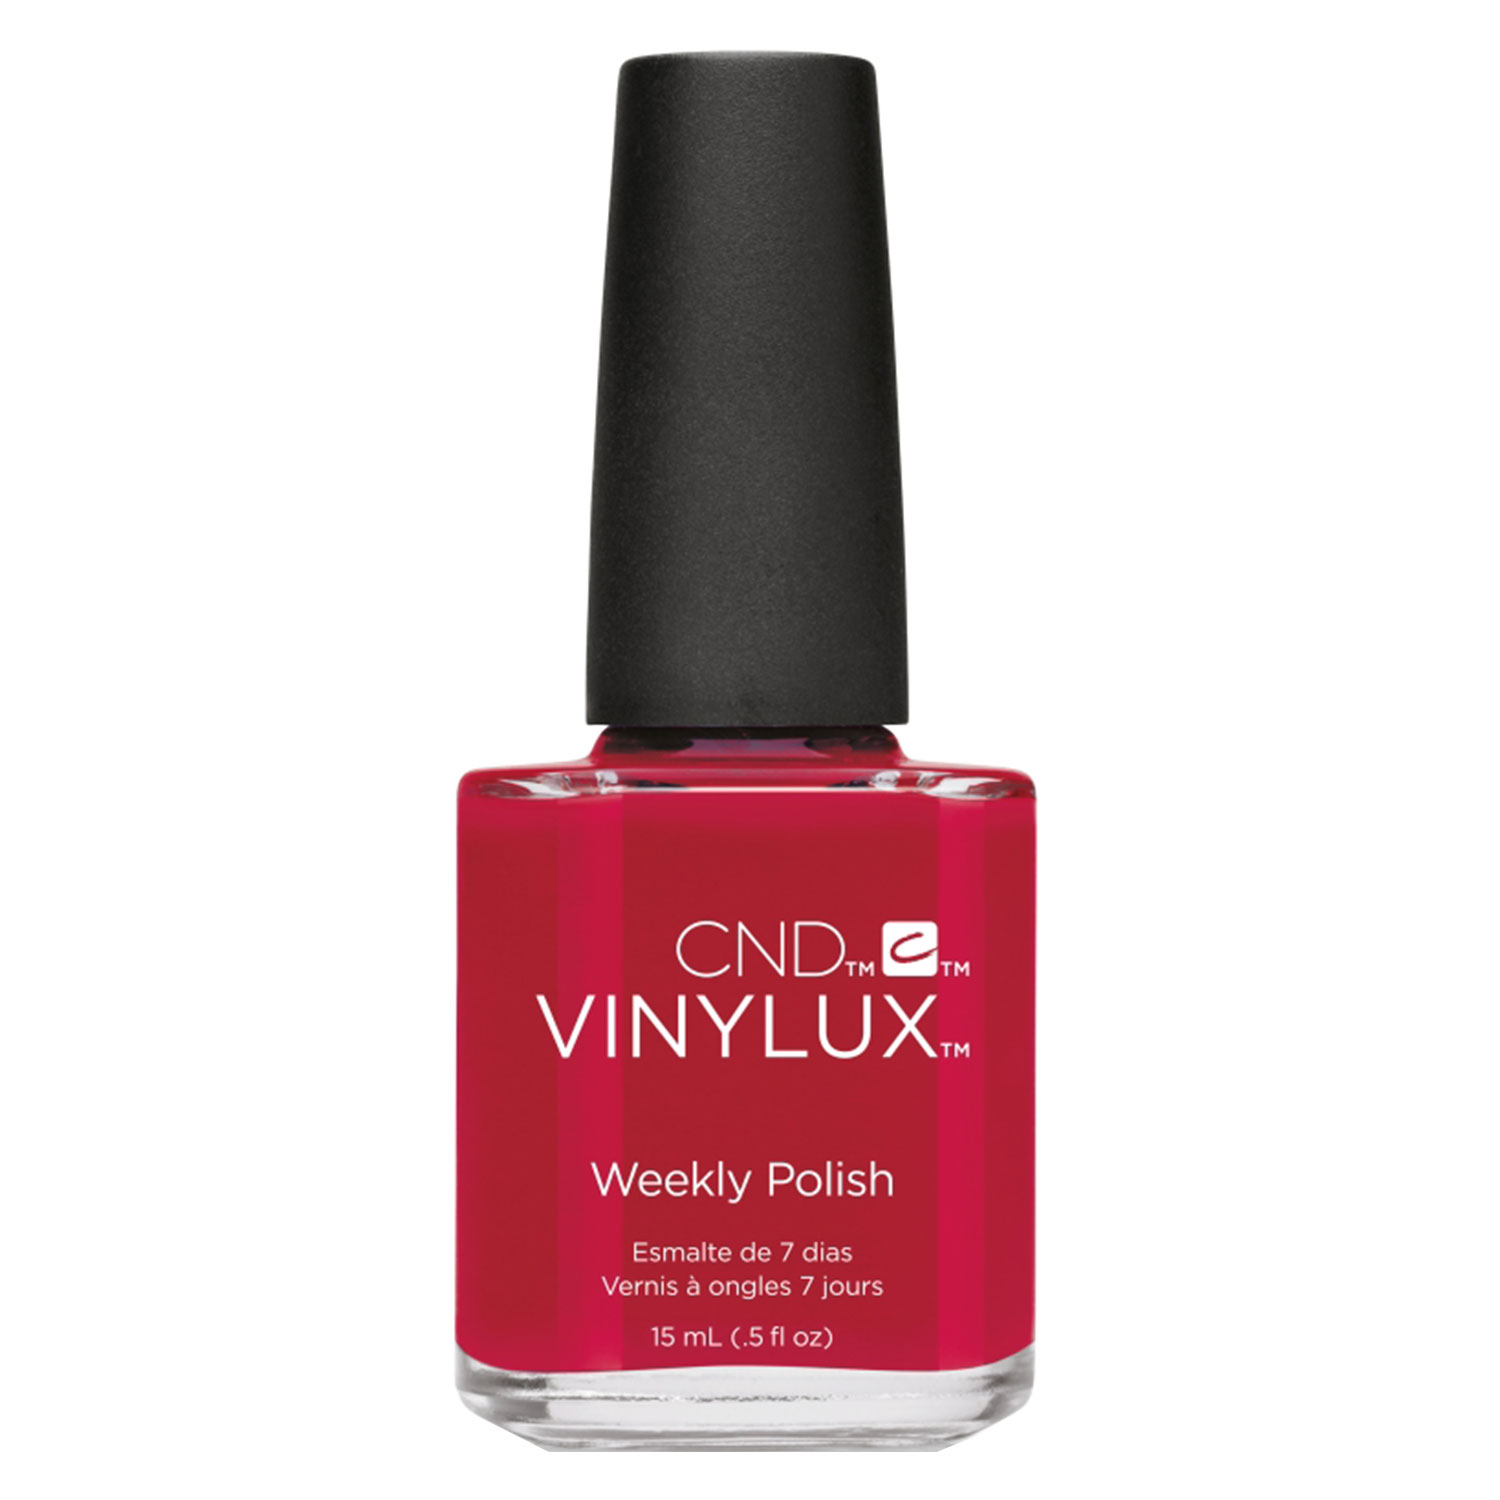 Vinylux - Weekly Polish Ripe Guava 248